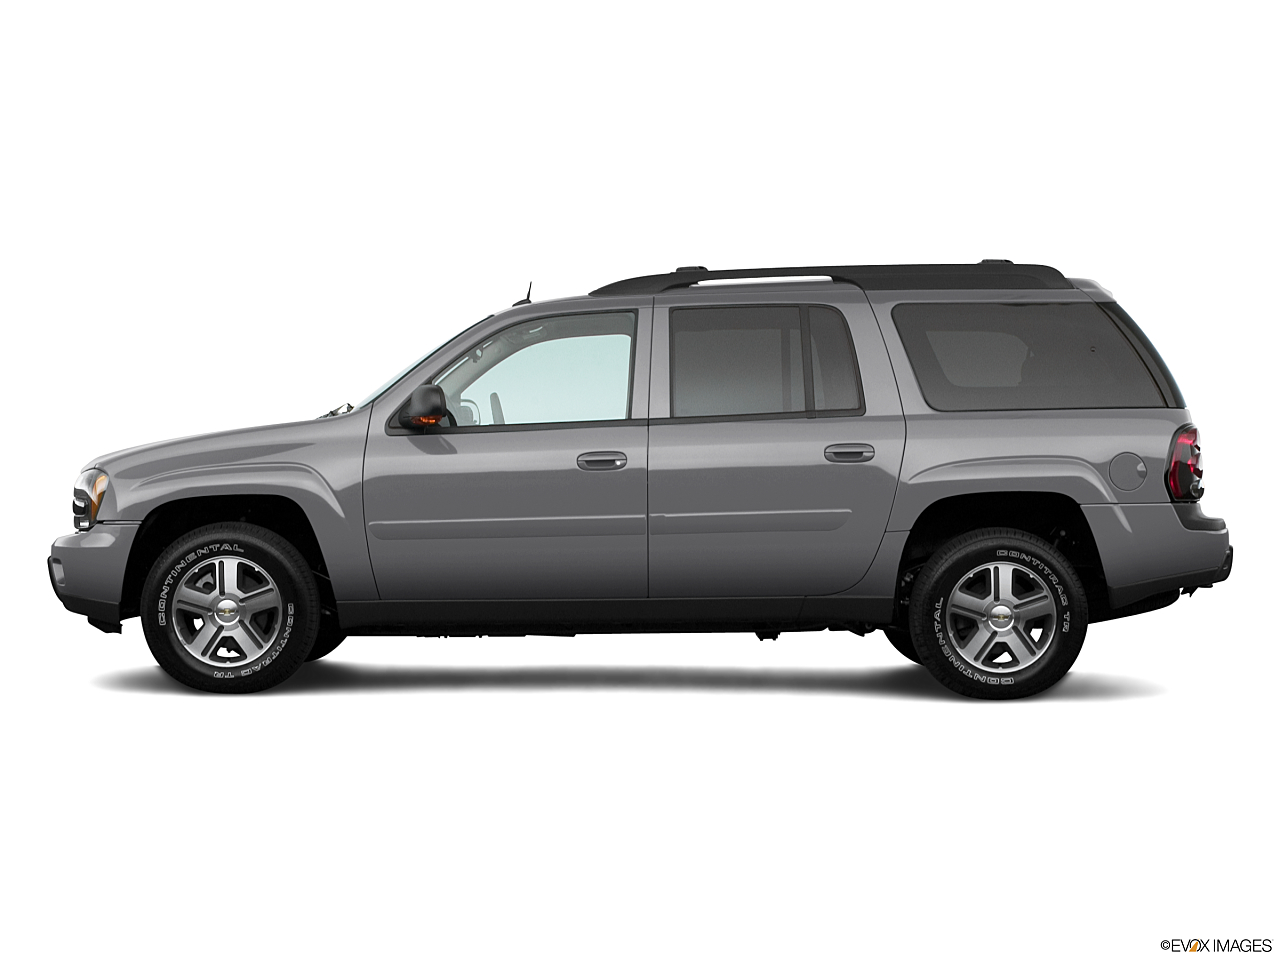 2006 chevrolet trailblazer ext lt at w w auto sales inc of rockingham nc research groovecar. Black Bedroom Furniture Sets. Home Design Ideas